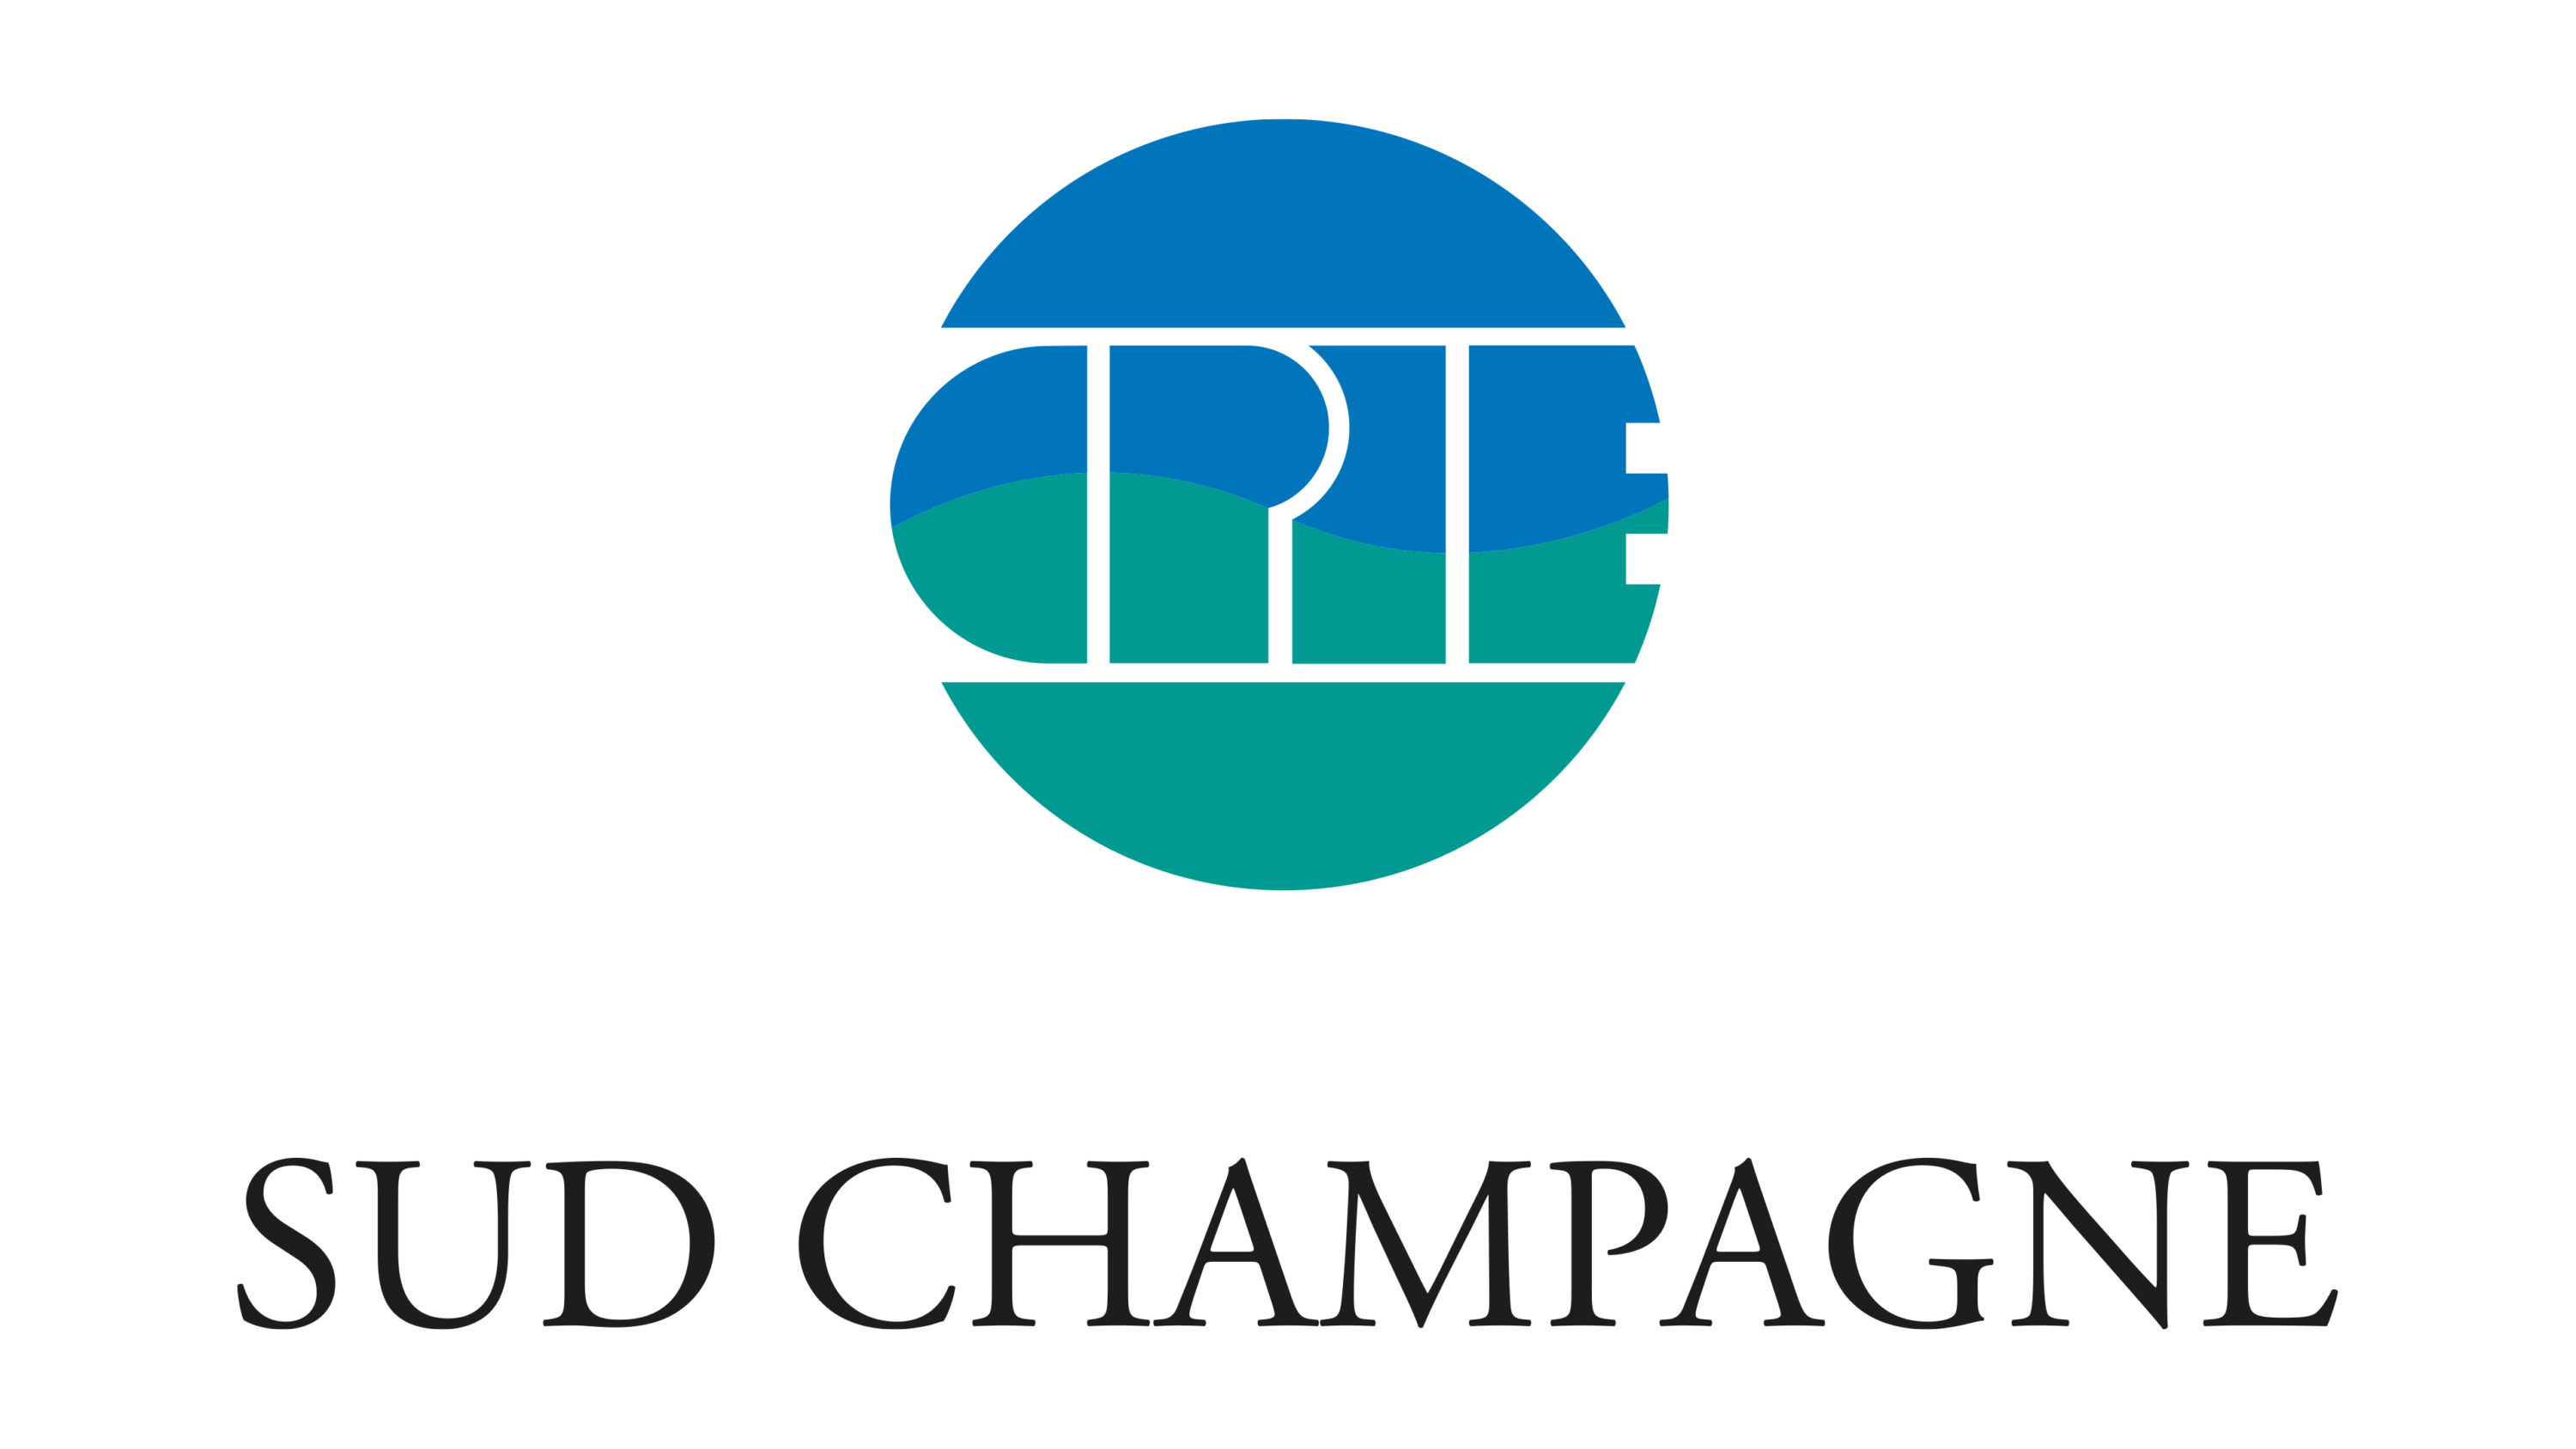 796_logo_cpie_sud_champagne.png -